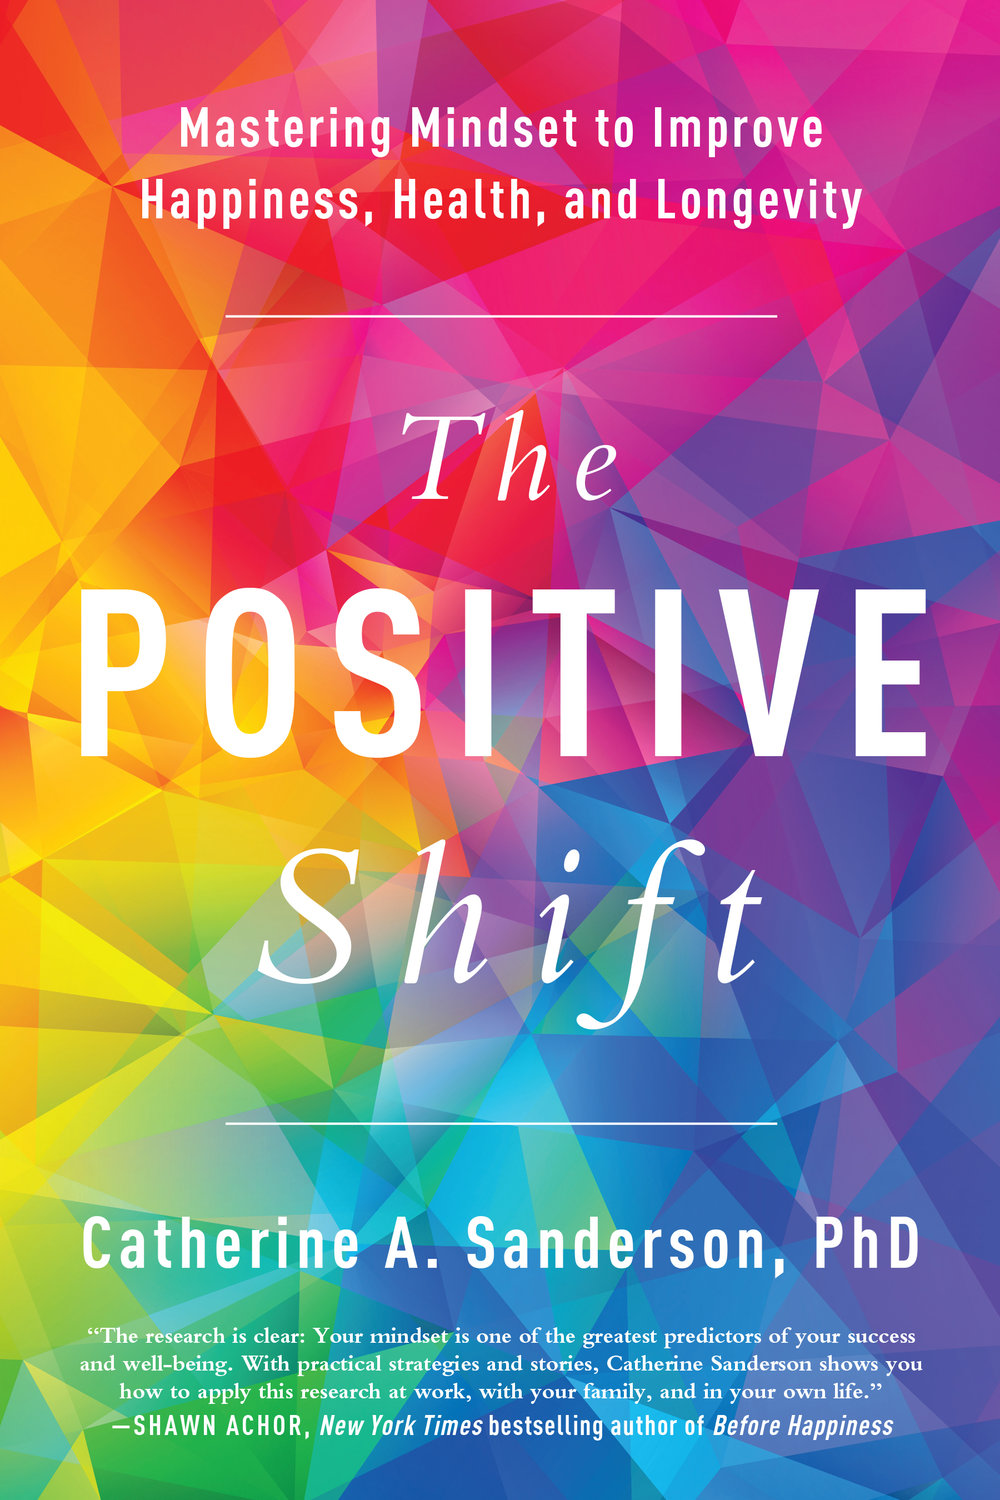 The Positive Shift by Catherine A. Sanderson, PhD